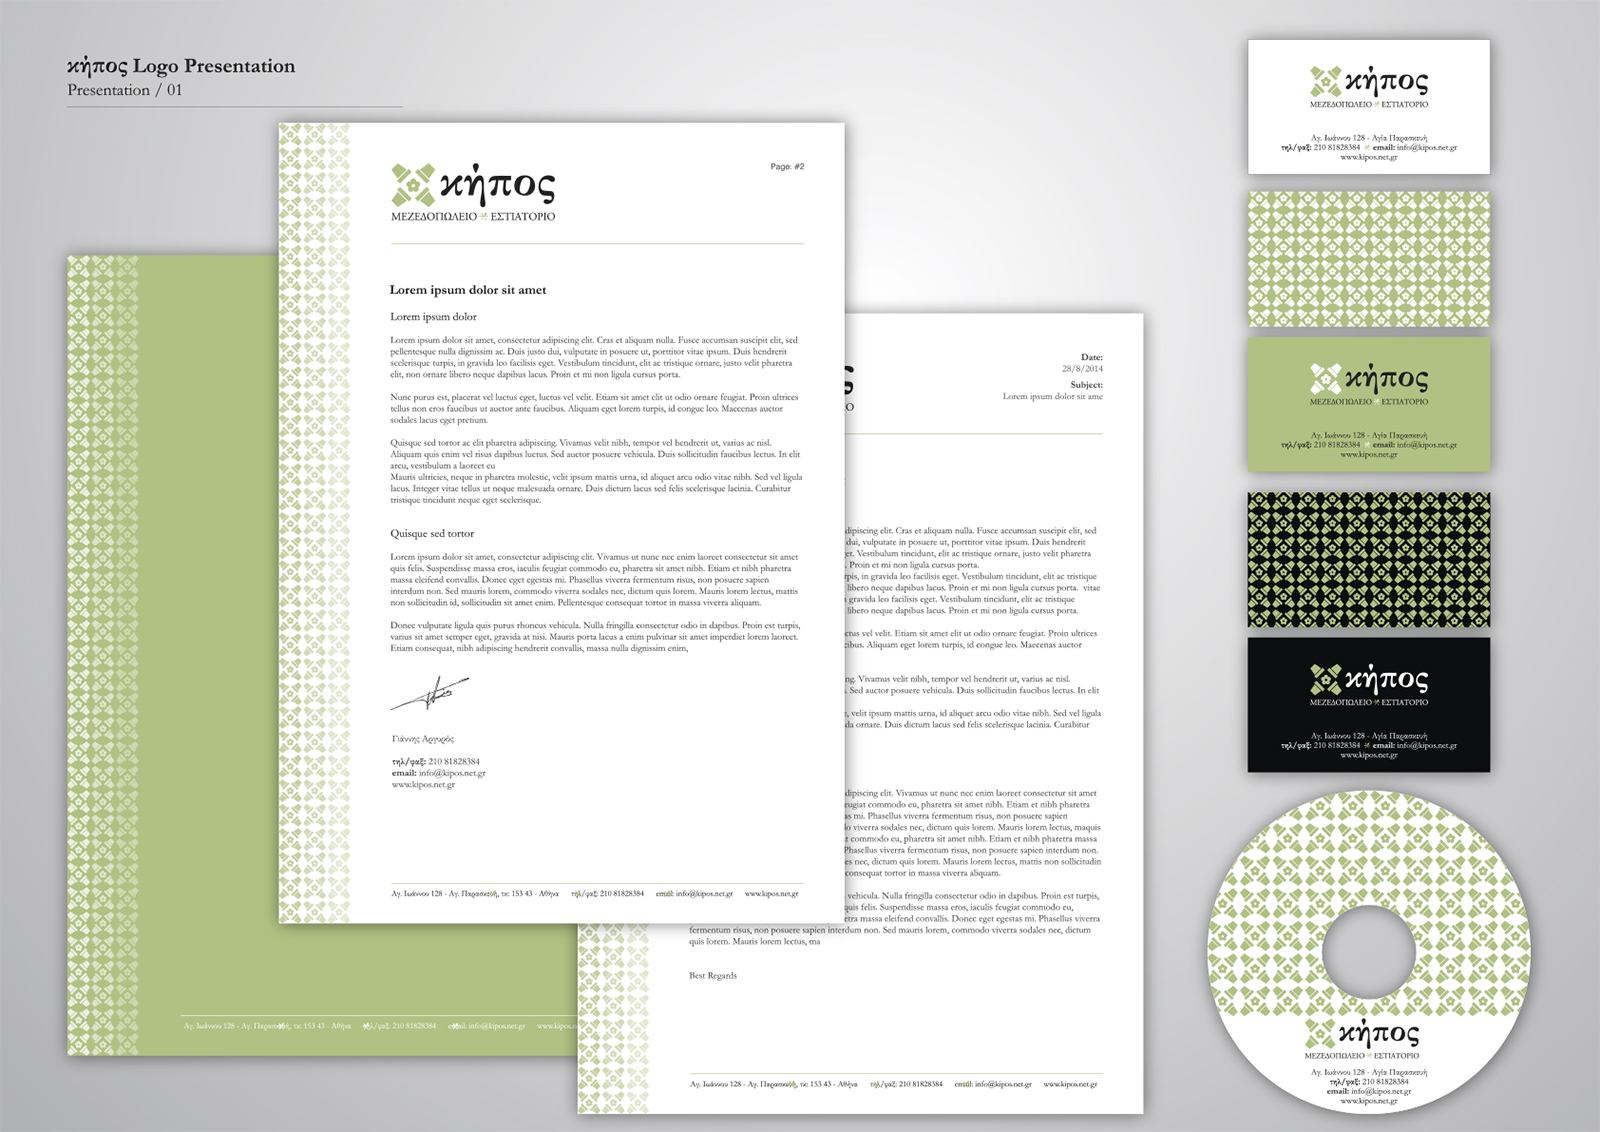 Corporate Identity Kipos Restaurant_Logo presentation_1_Yianart